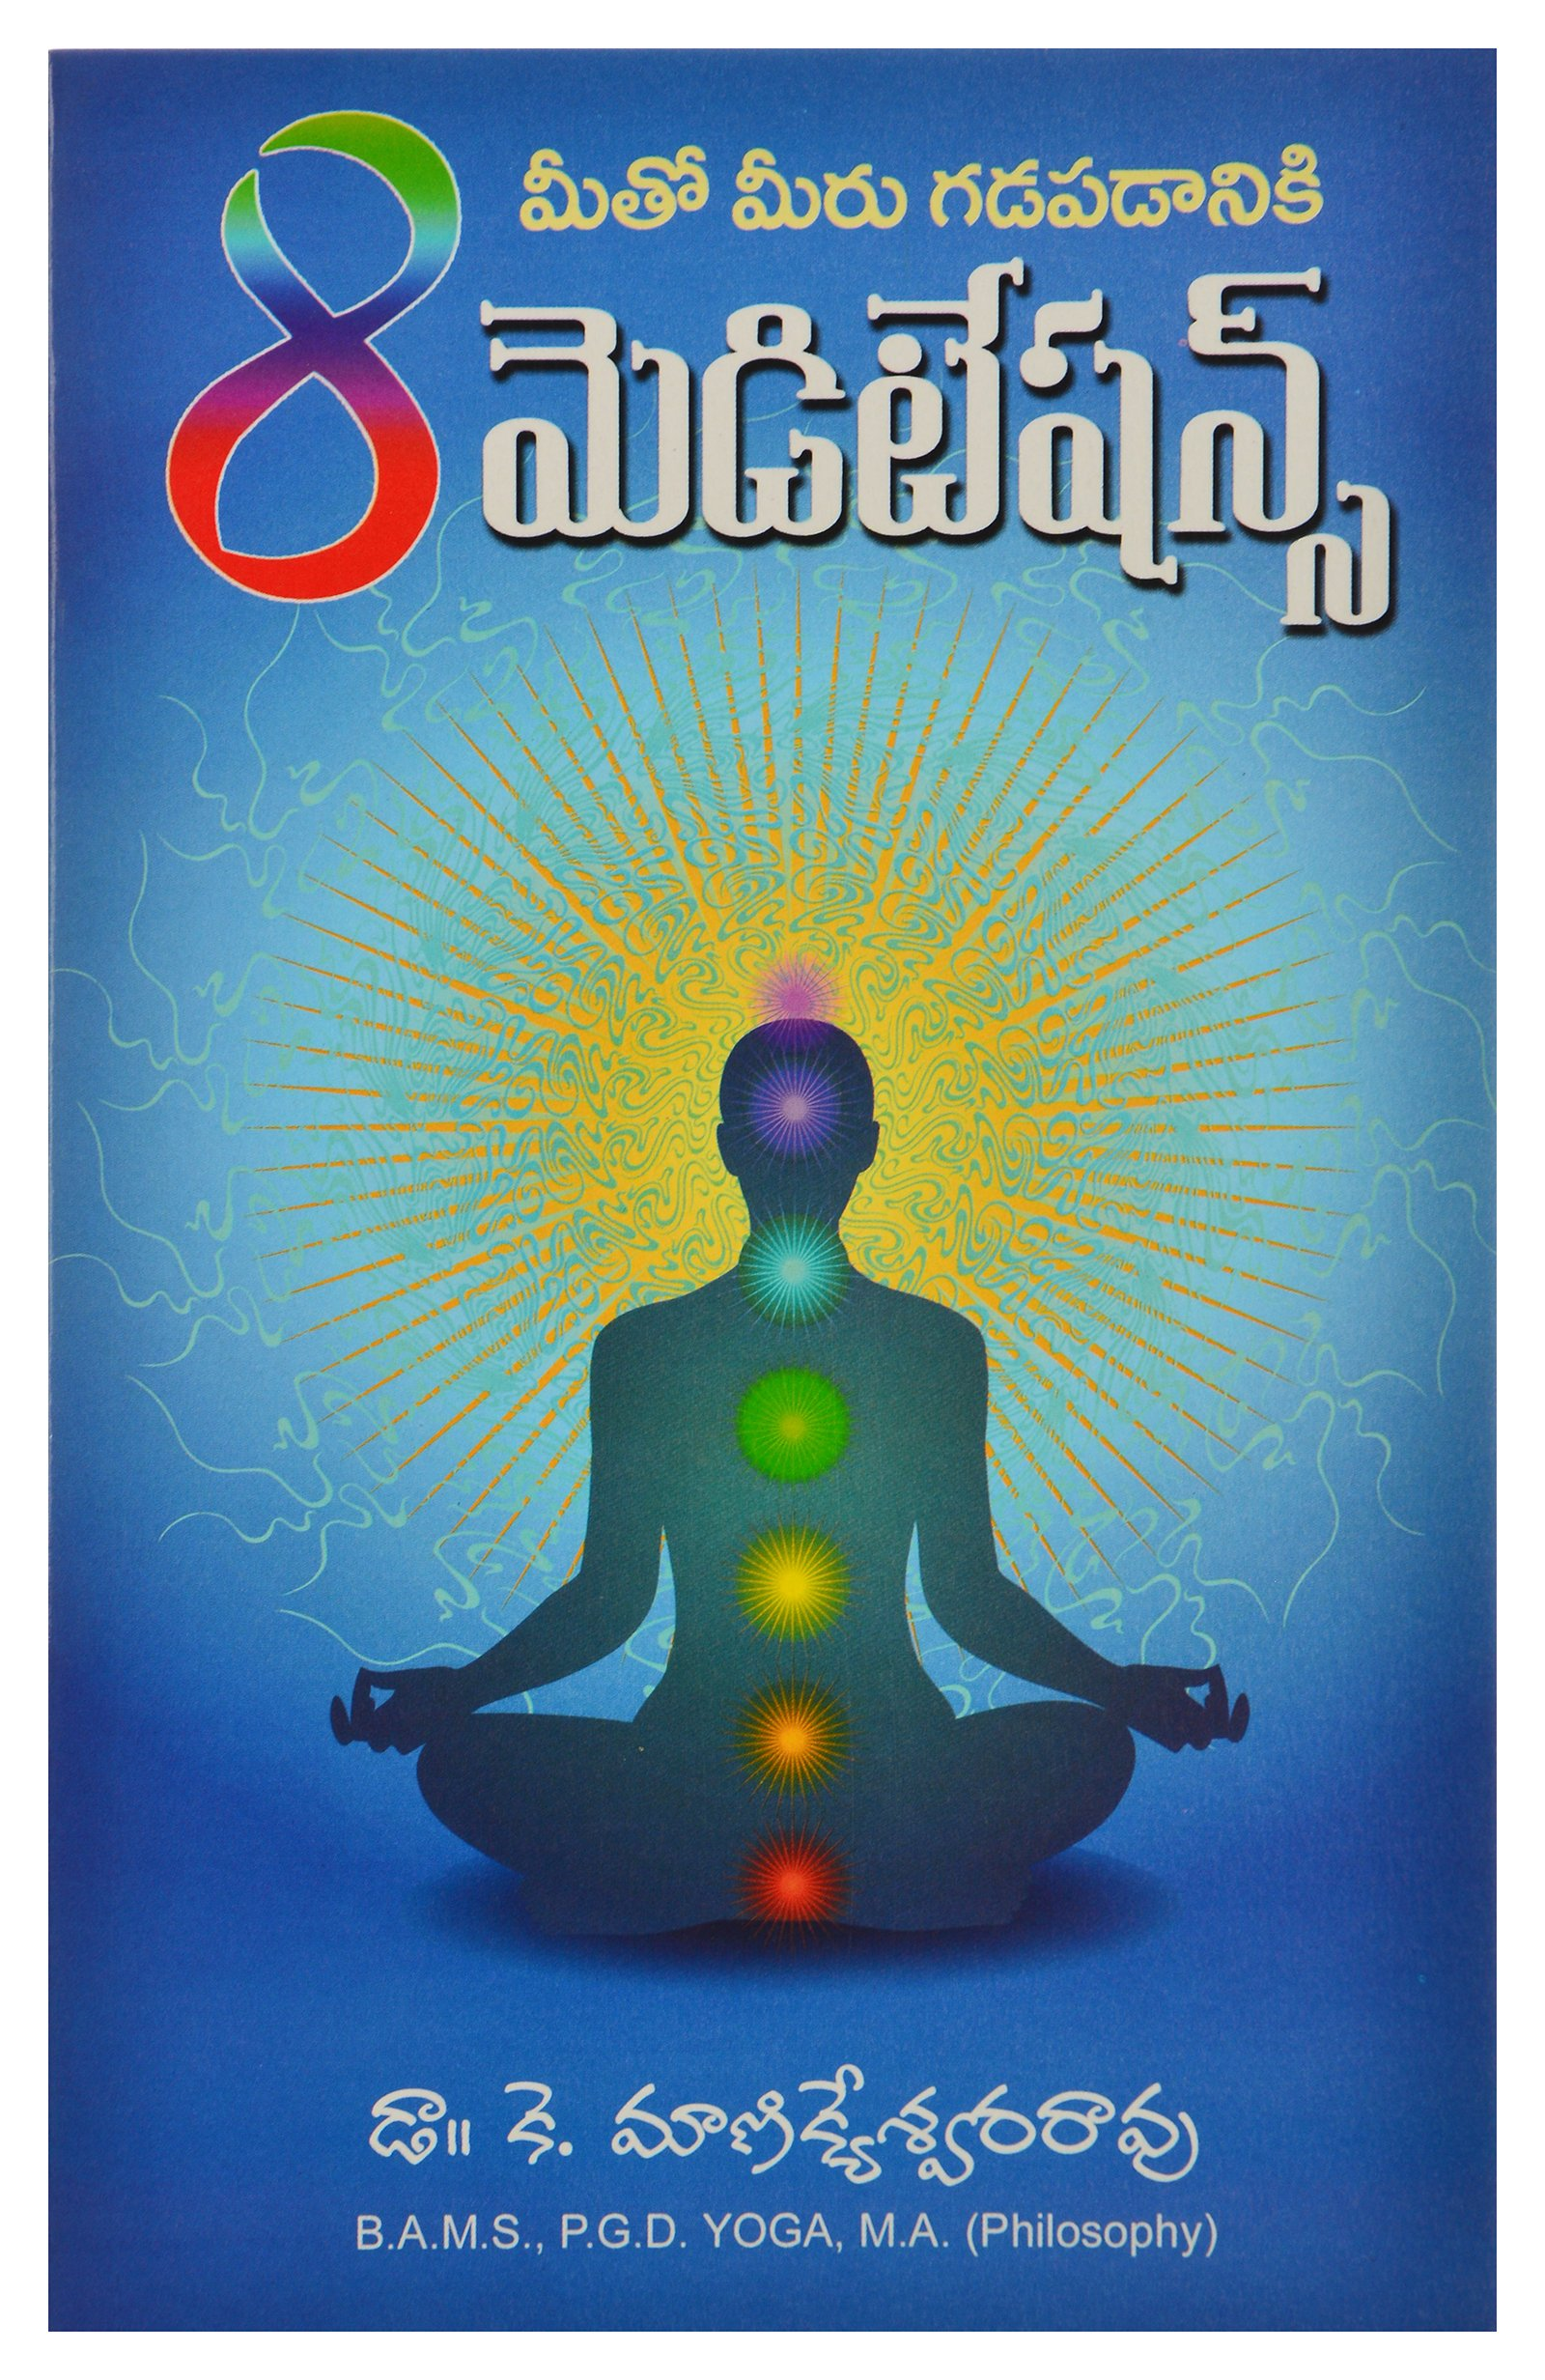 Buy Meditation (Telugu) Book Online at Low Prices in India ...